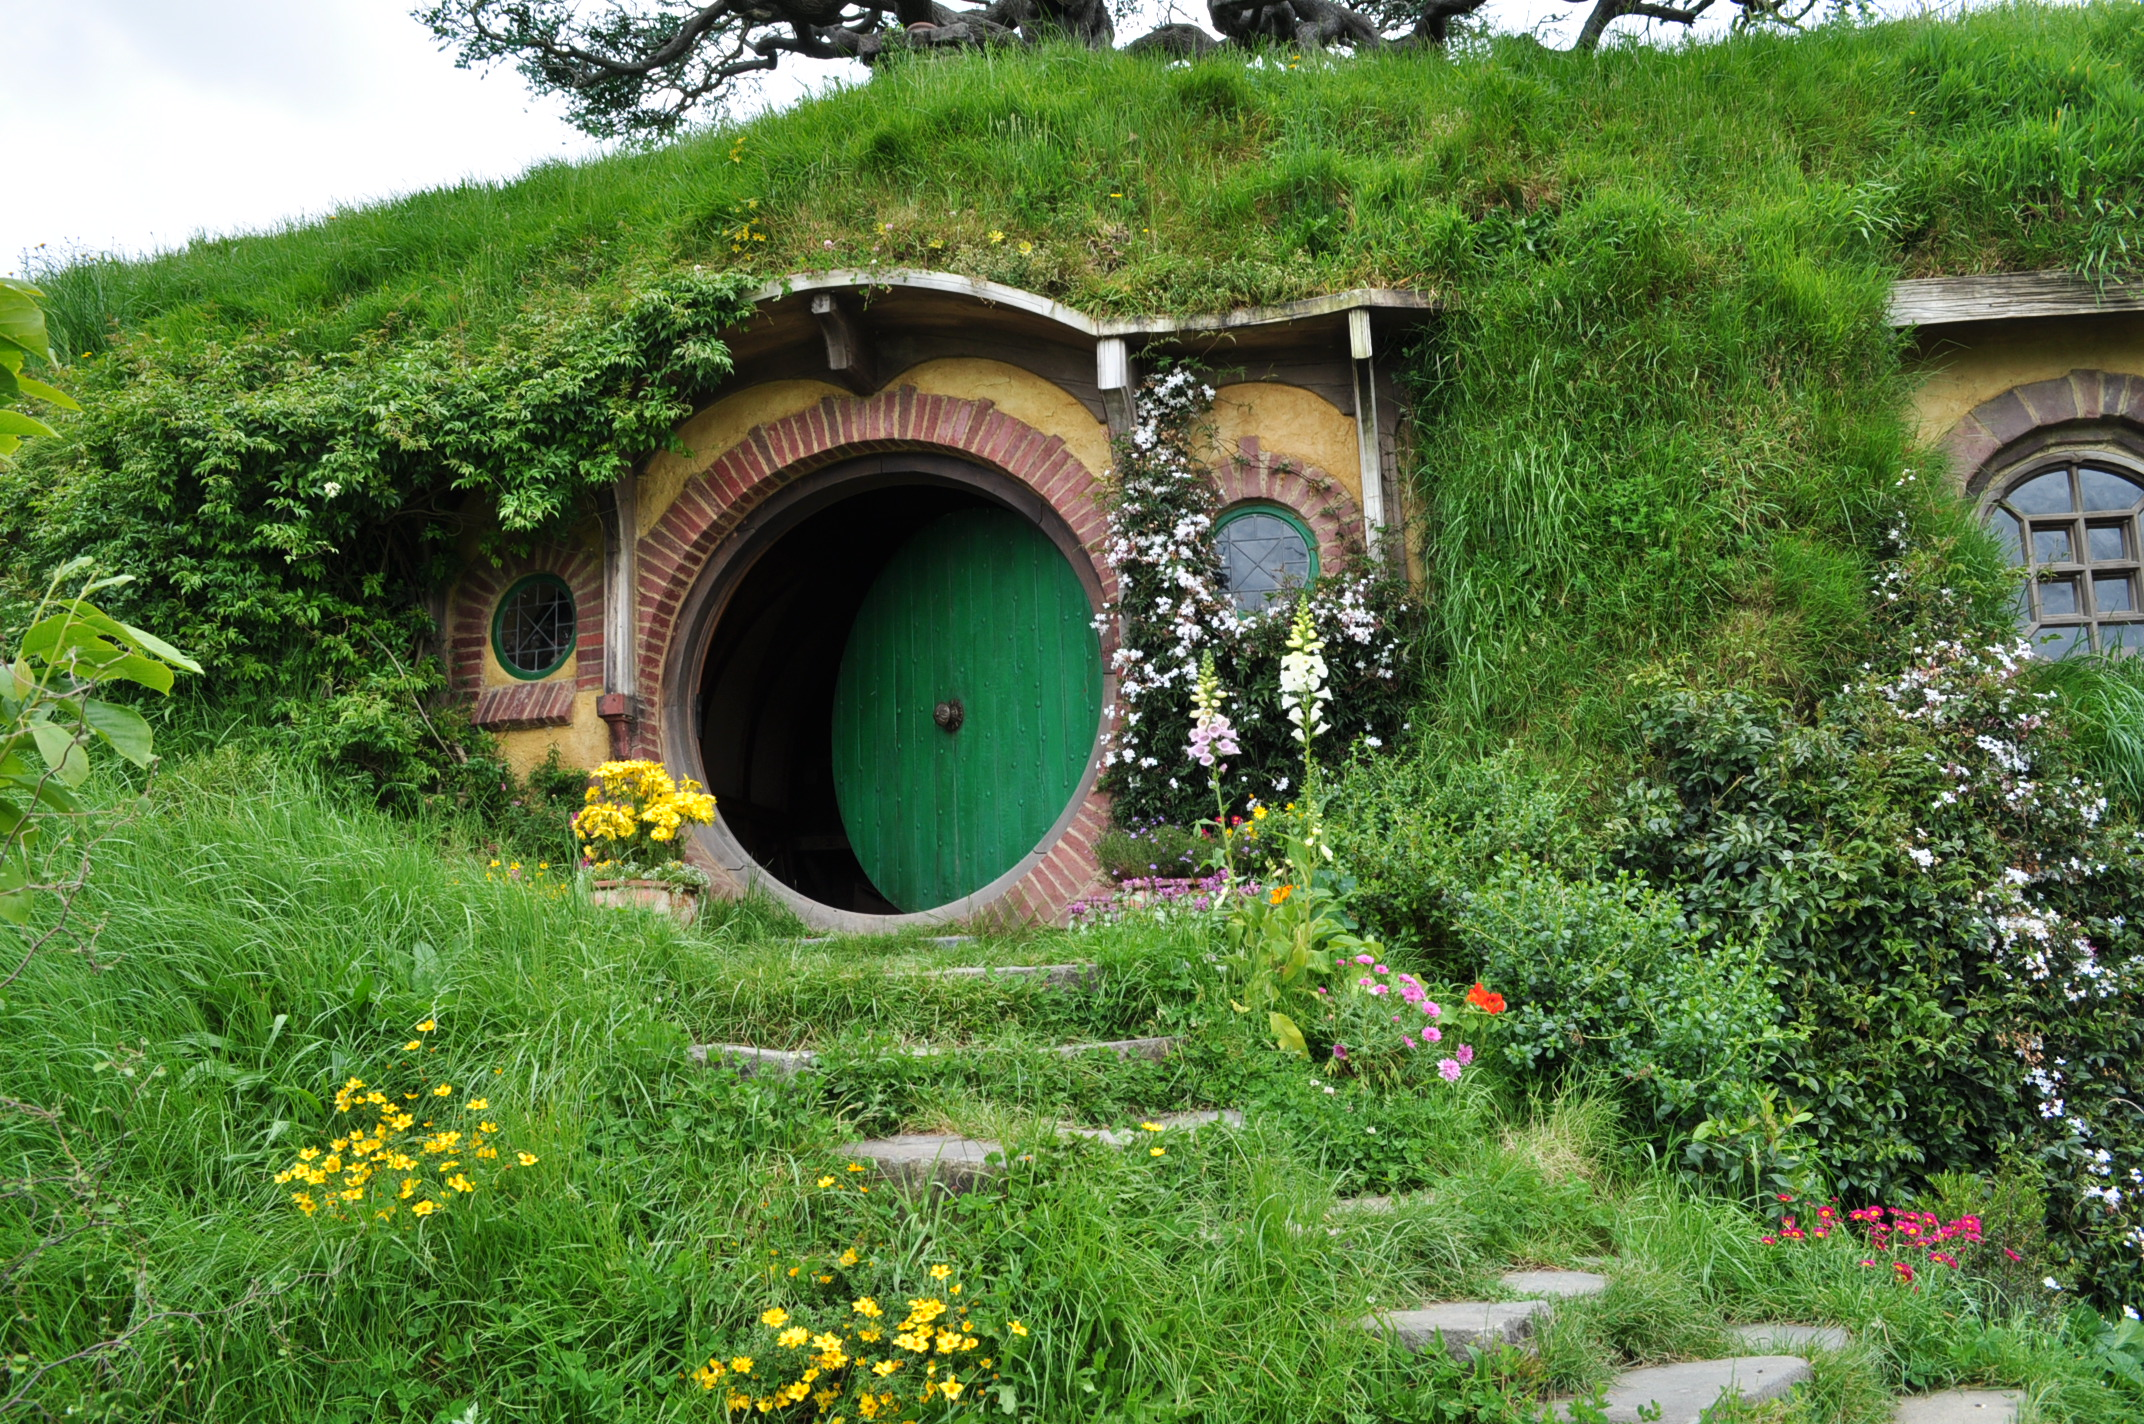 Hobbit house shrine of dreams for Build a house online free